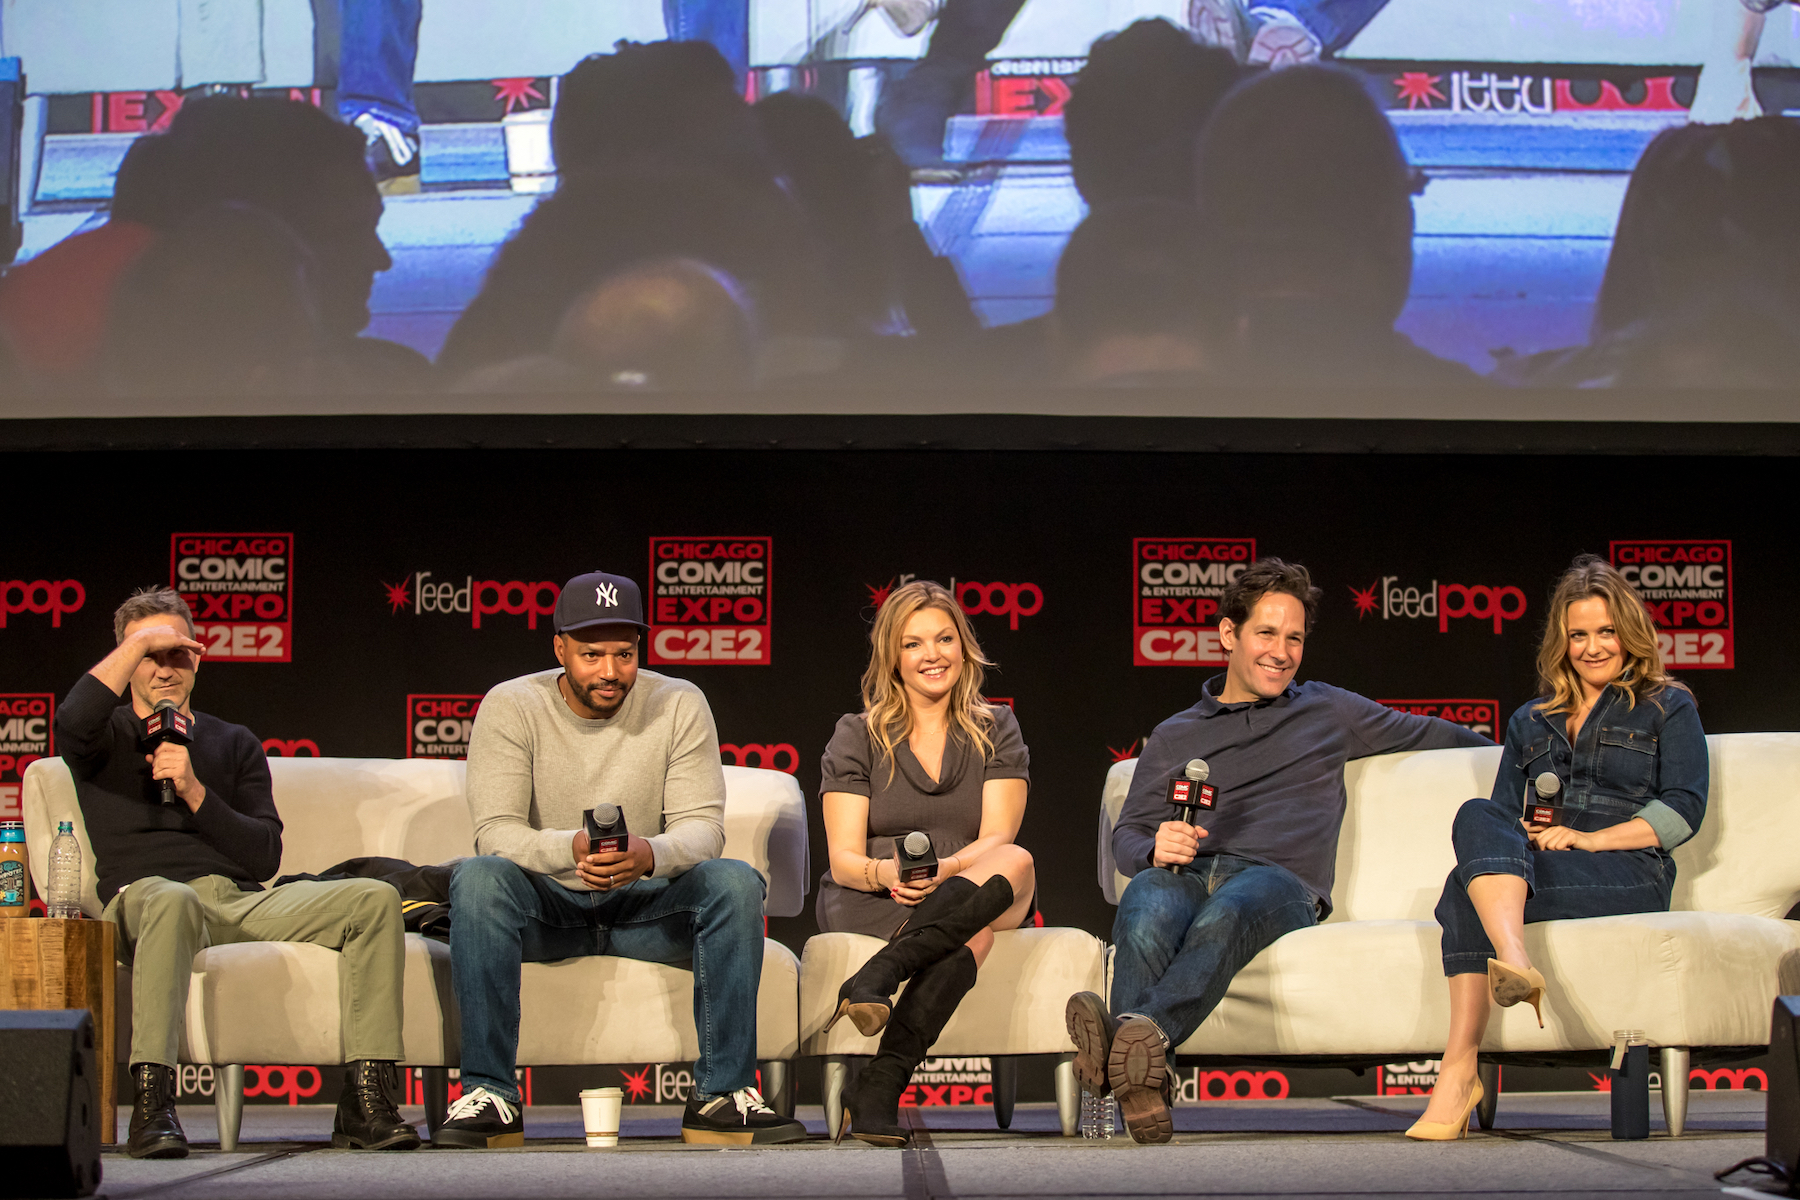 'Clueless' Cast Remembers Brittany Murphy 10 Years After Death - 'Clueless' Cast, Breckin Meyer, Donald Faison, Paul Rudd, Alicia Silverstone at Chicago Comic & Entertainment Expo 2019.